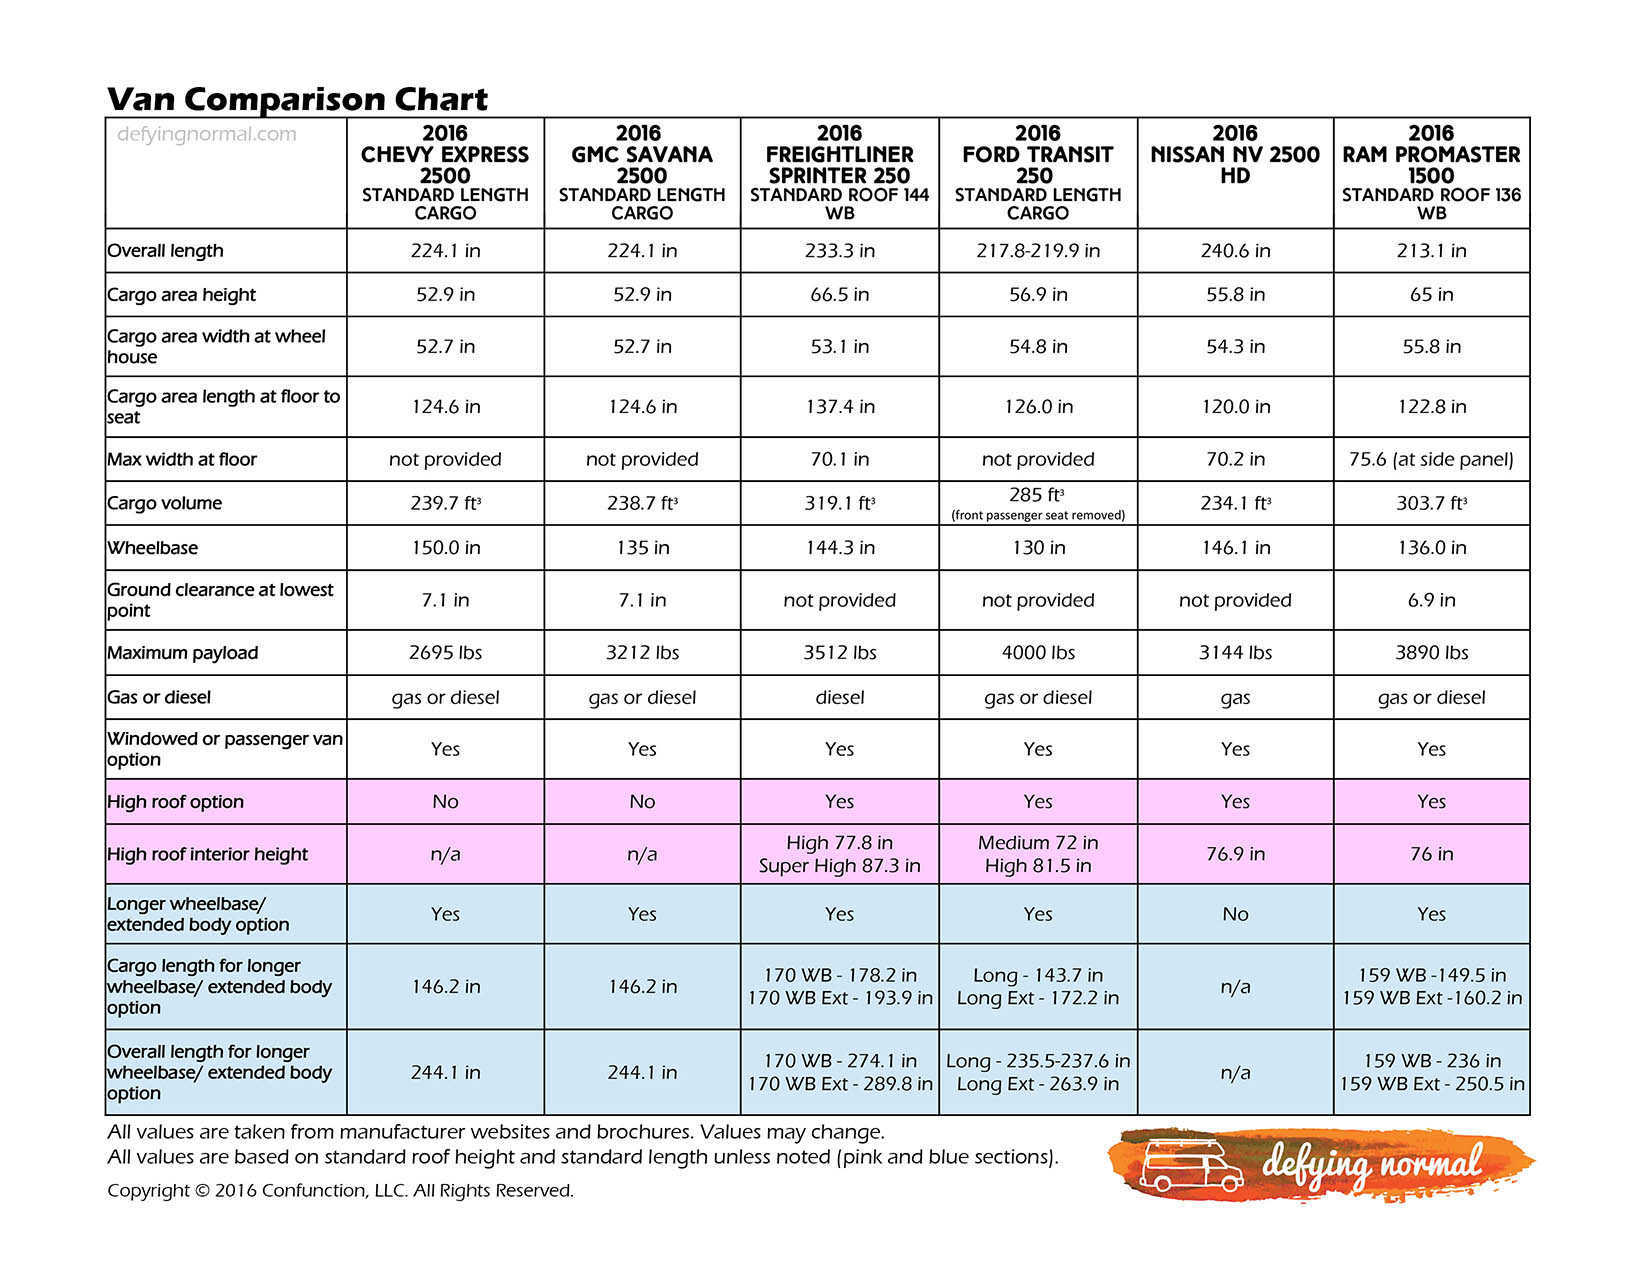 Van Comparison Chart Defying Normal